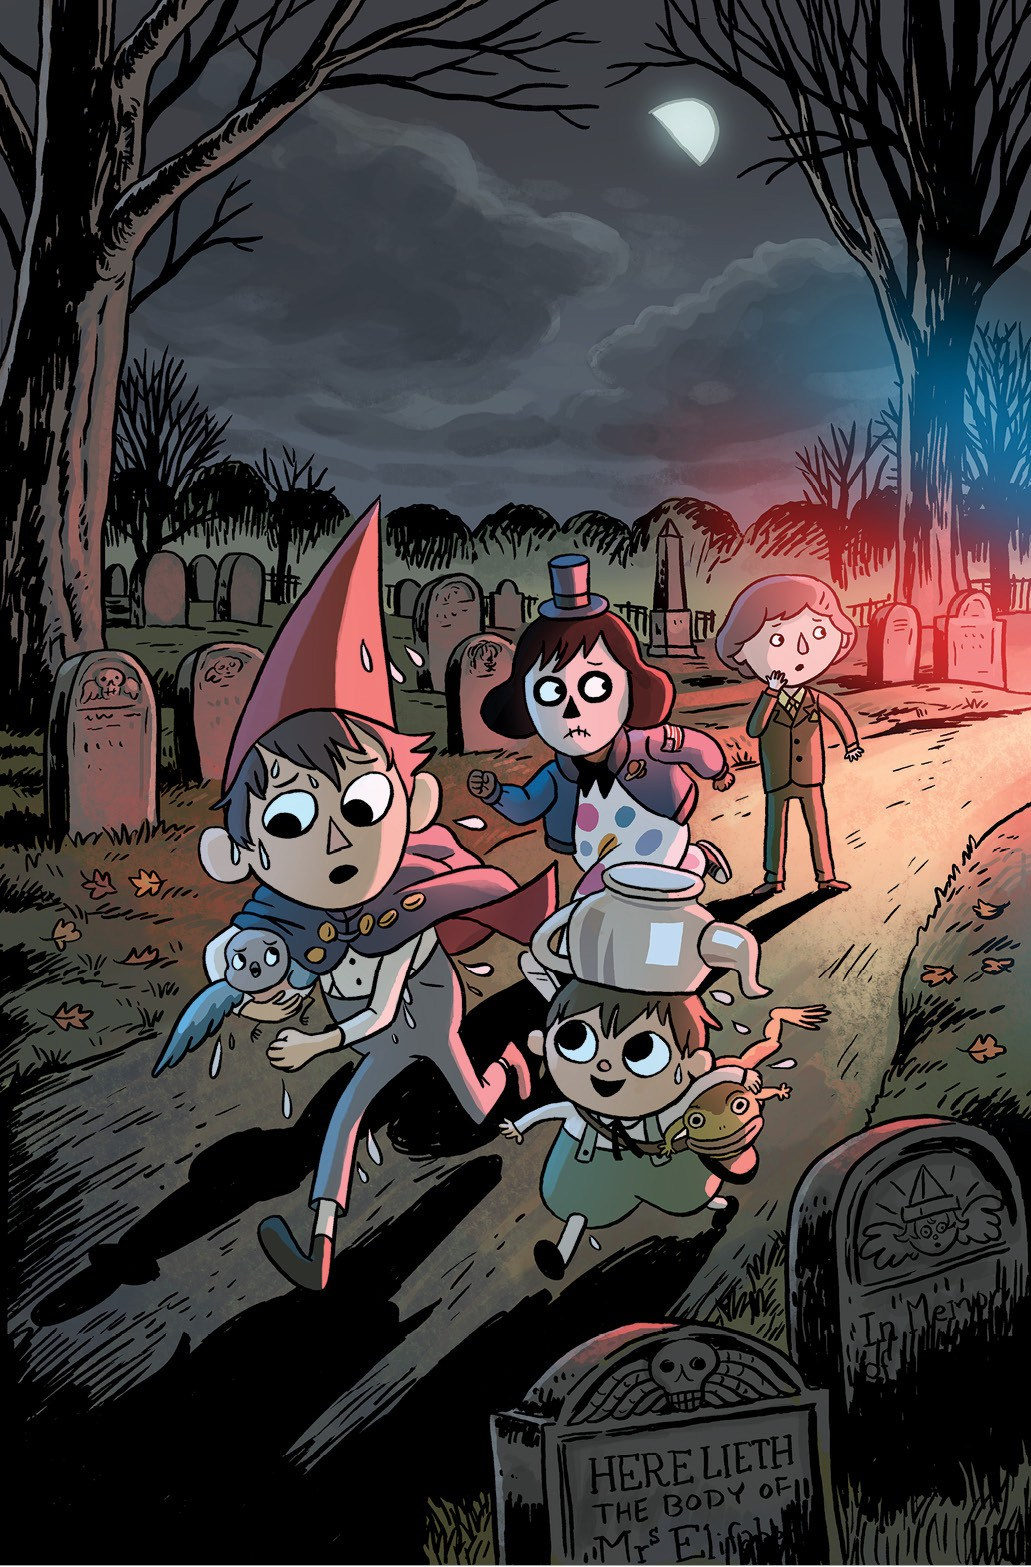 Over The Garden Wall: Distillatoria Graphic Novel To Be Released November 2018